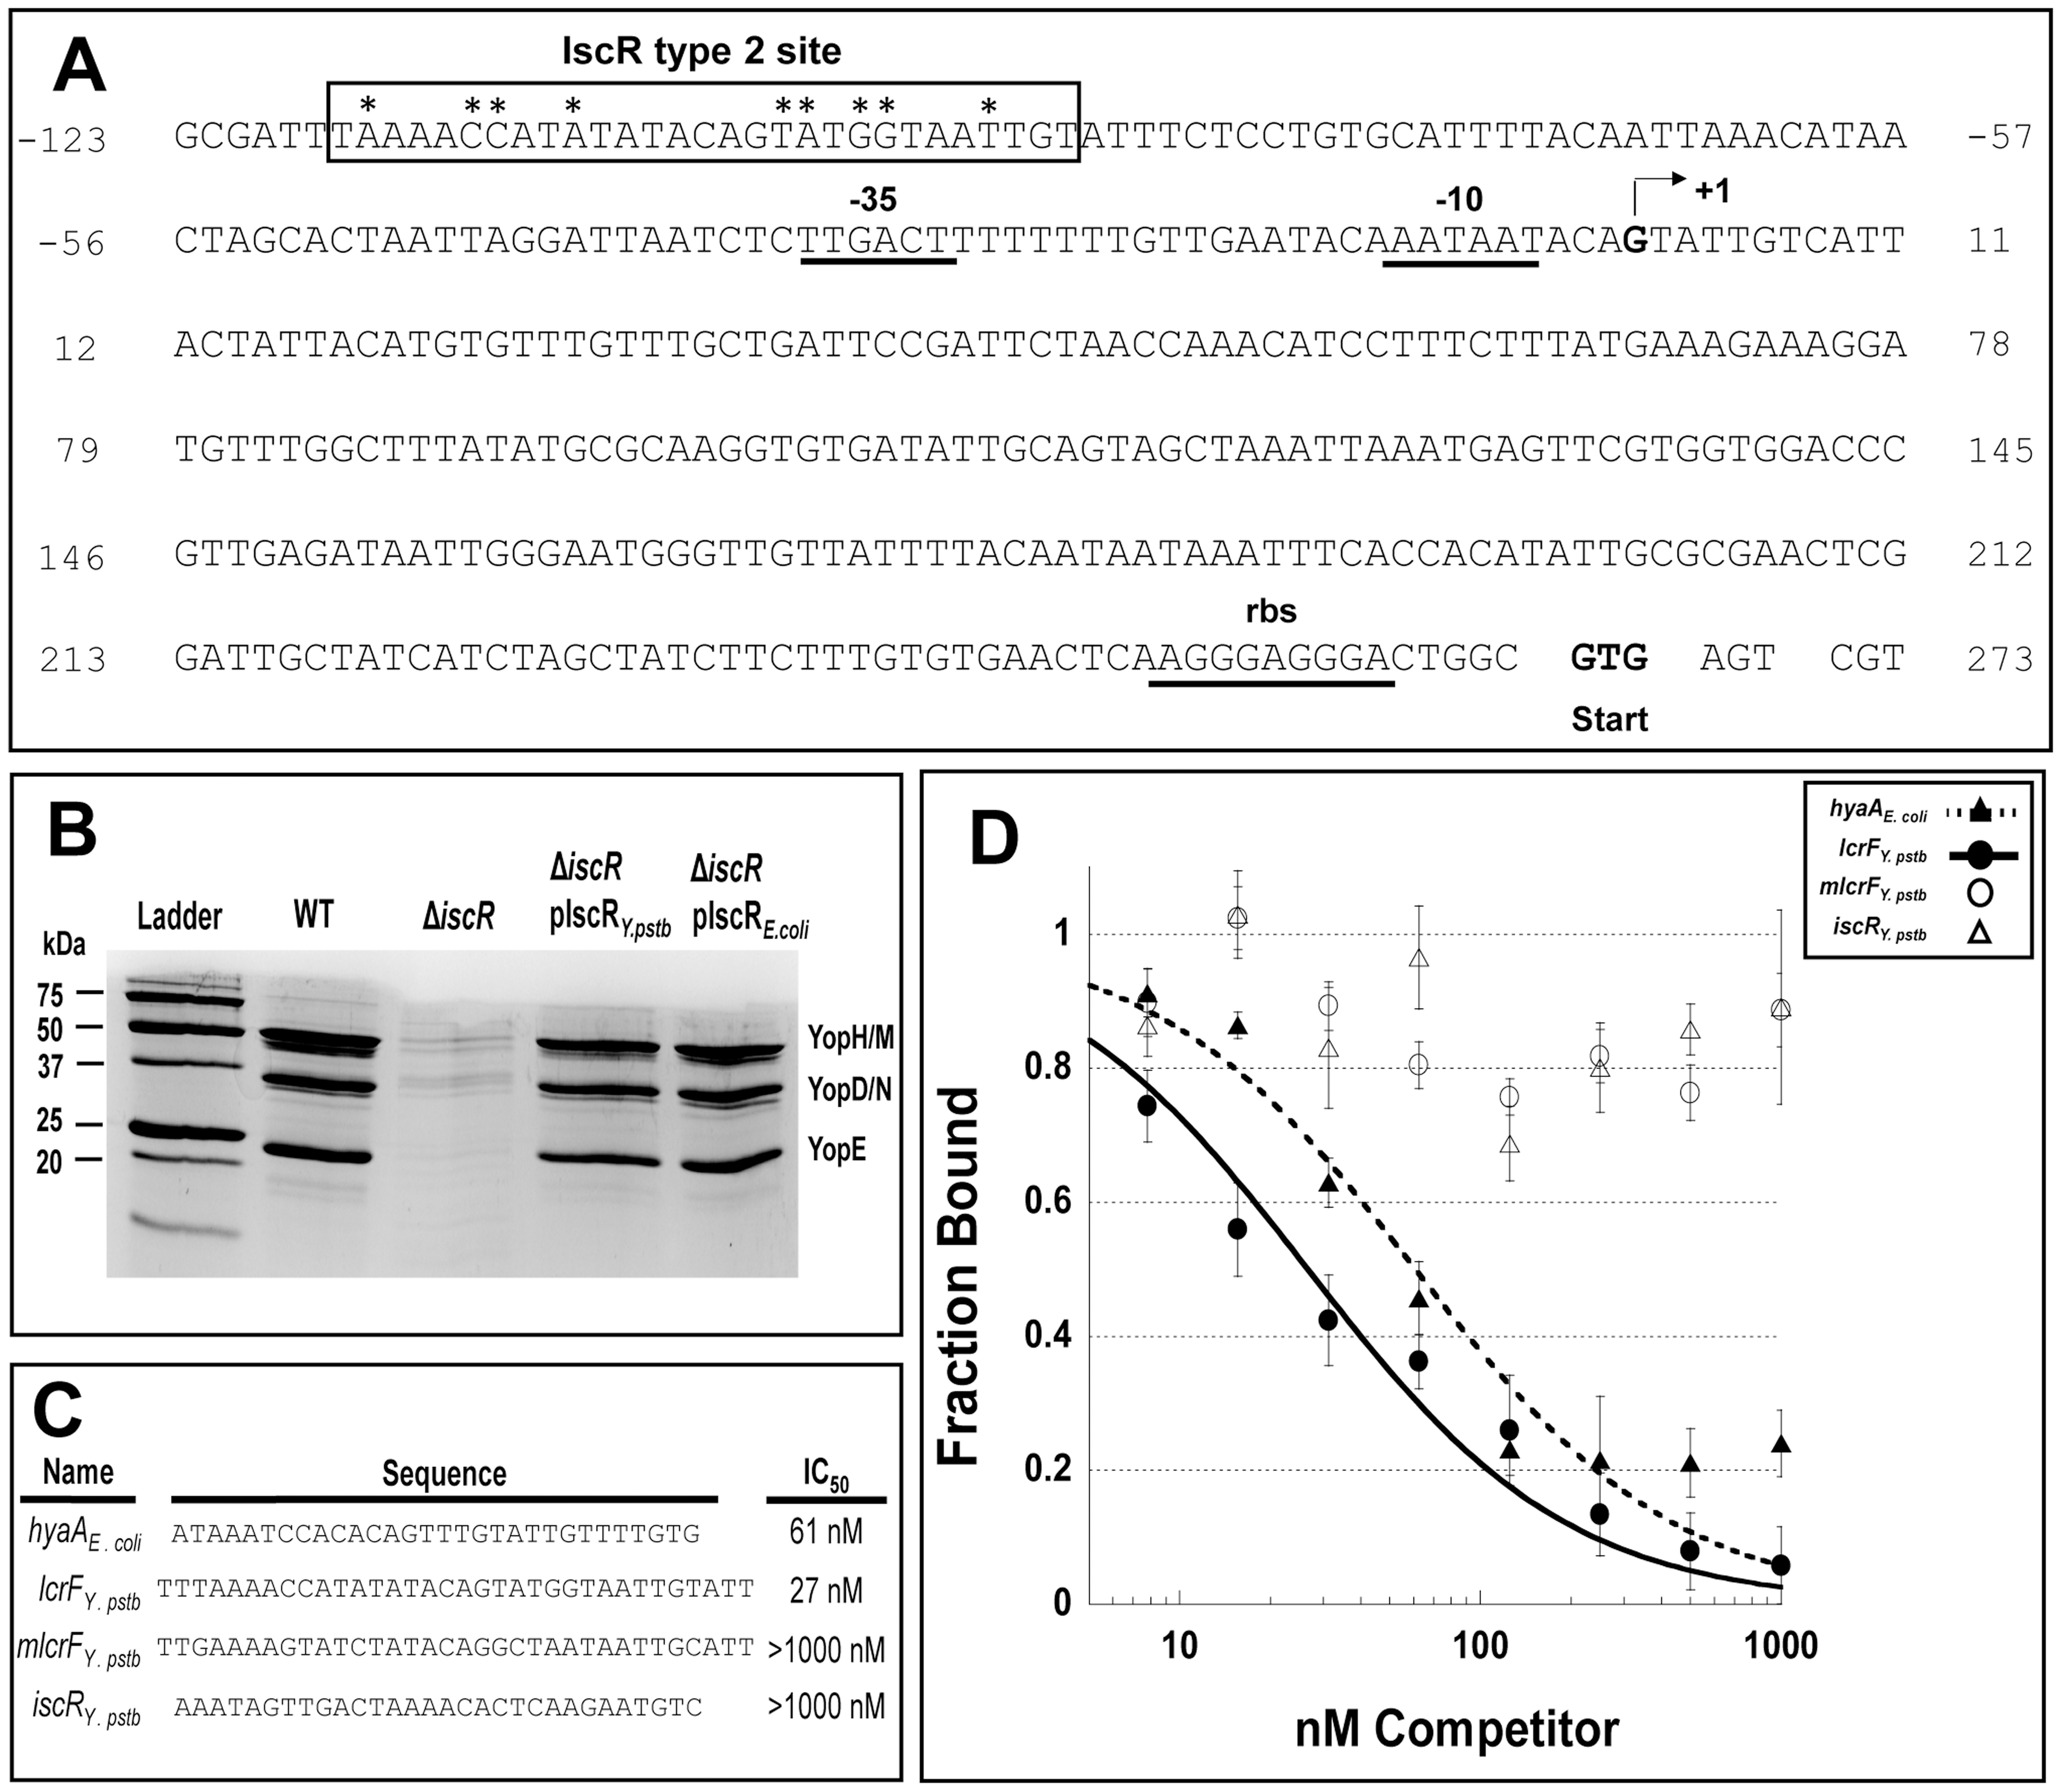 IscR binds a novel motif 2 site within the <i>lcrF</i> promoter region.